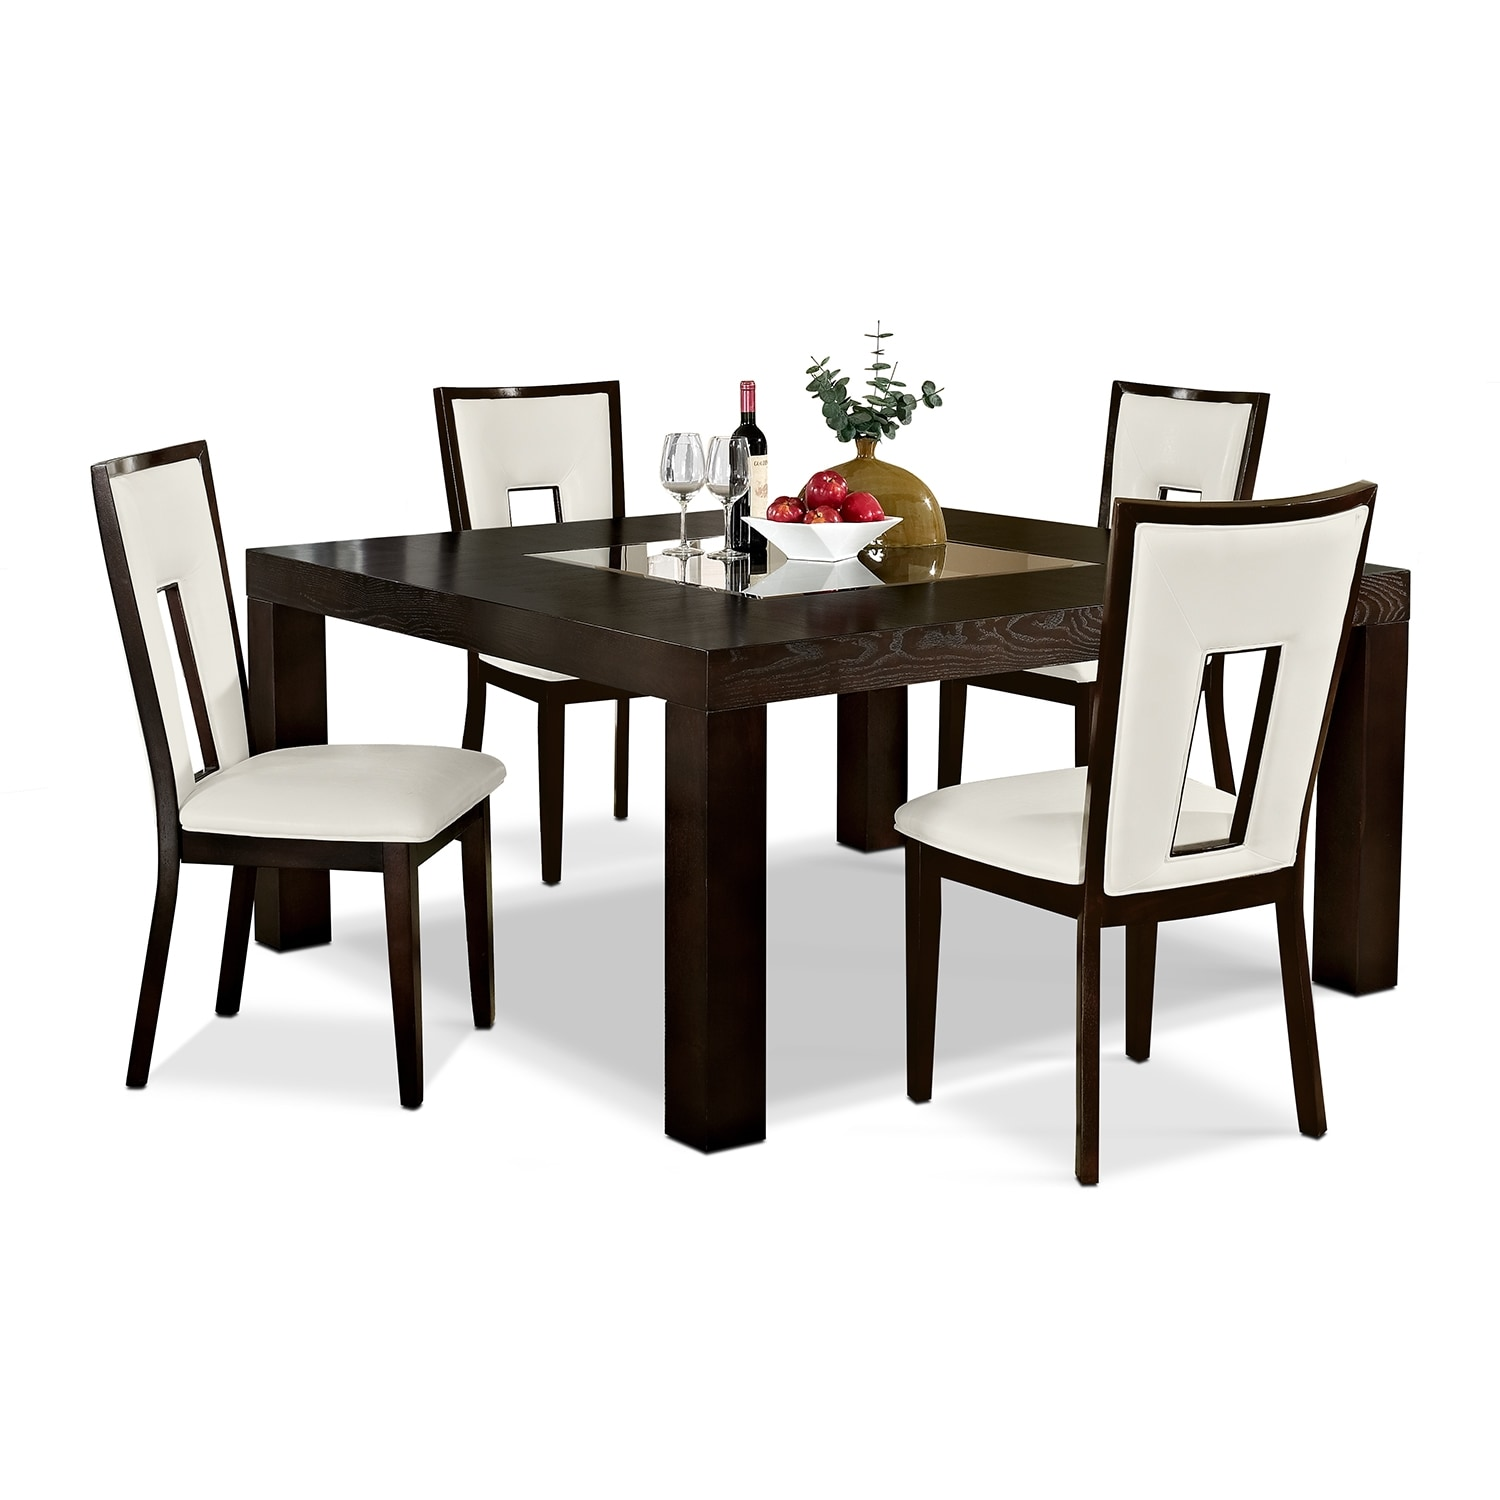 dining room furniture tango madera 5 pc dinette 60 table